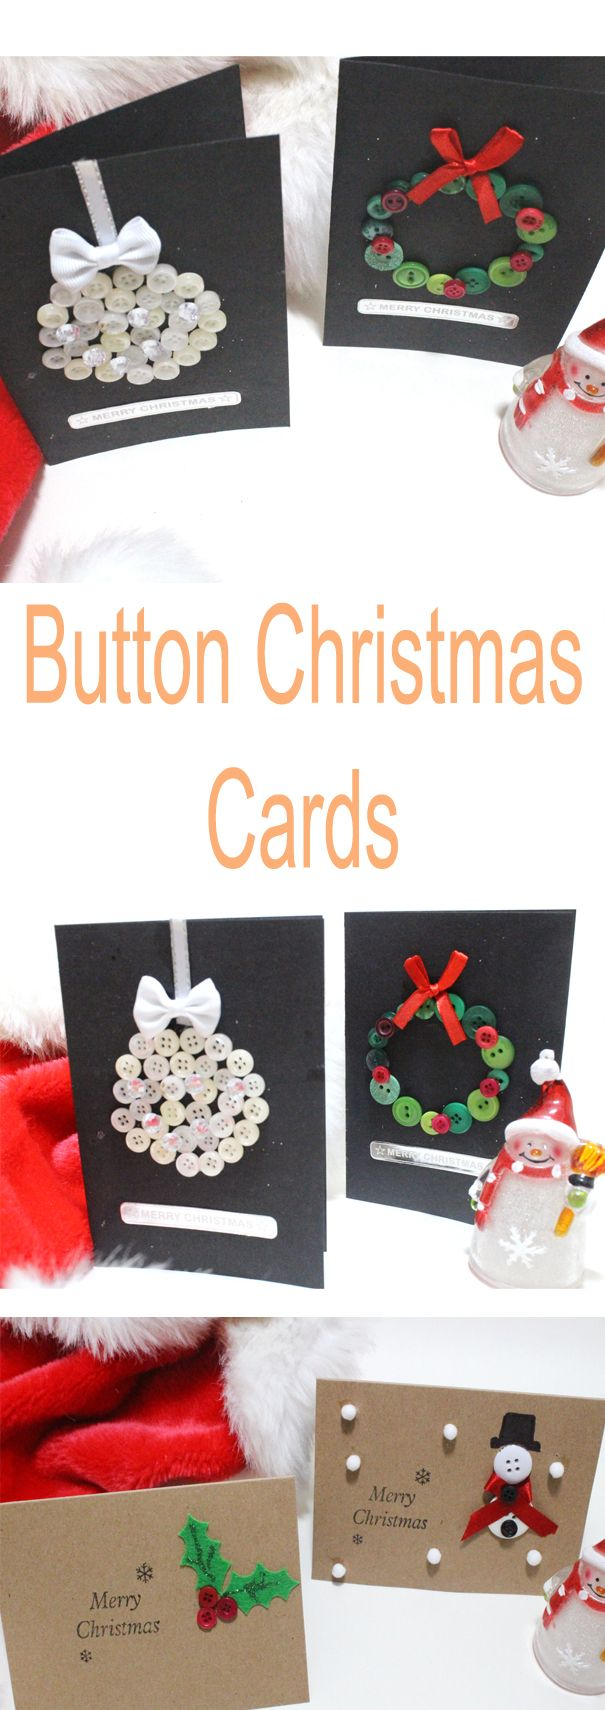 how to make chistmas button cards